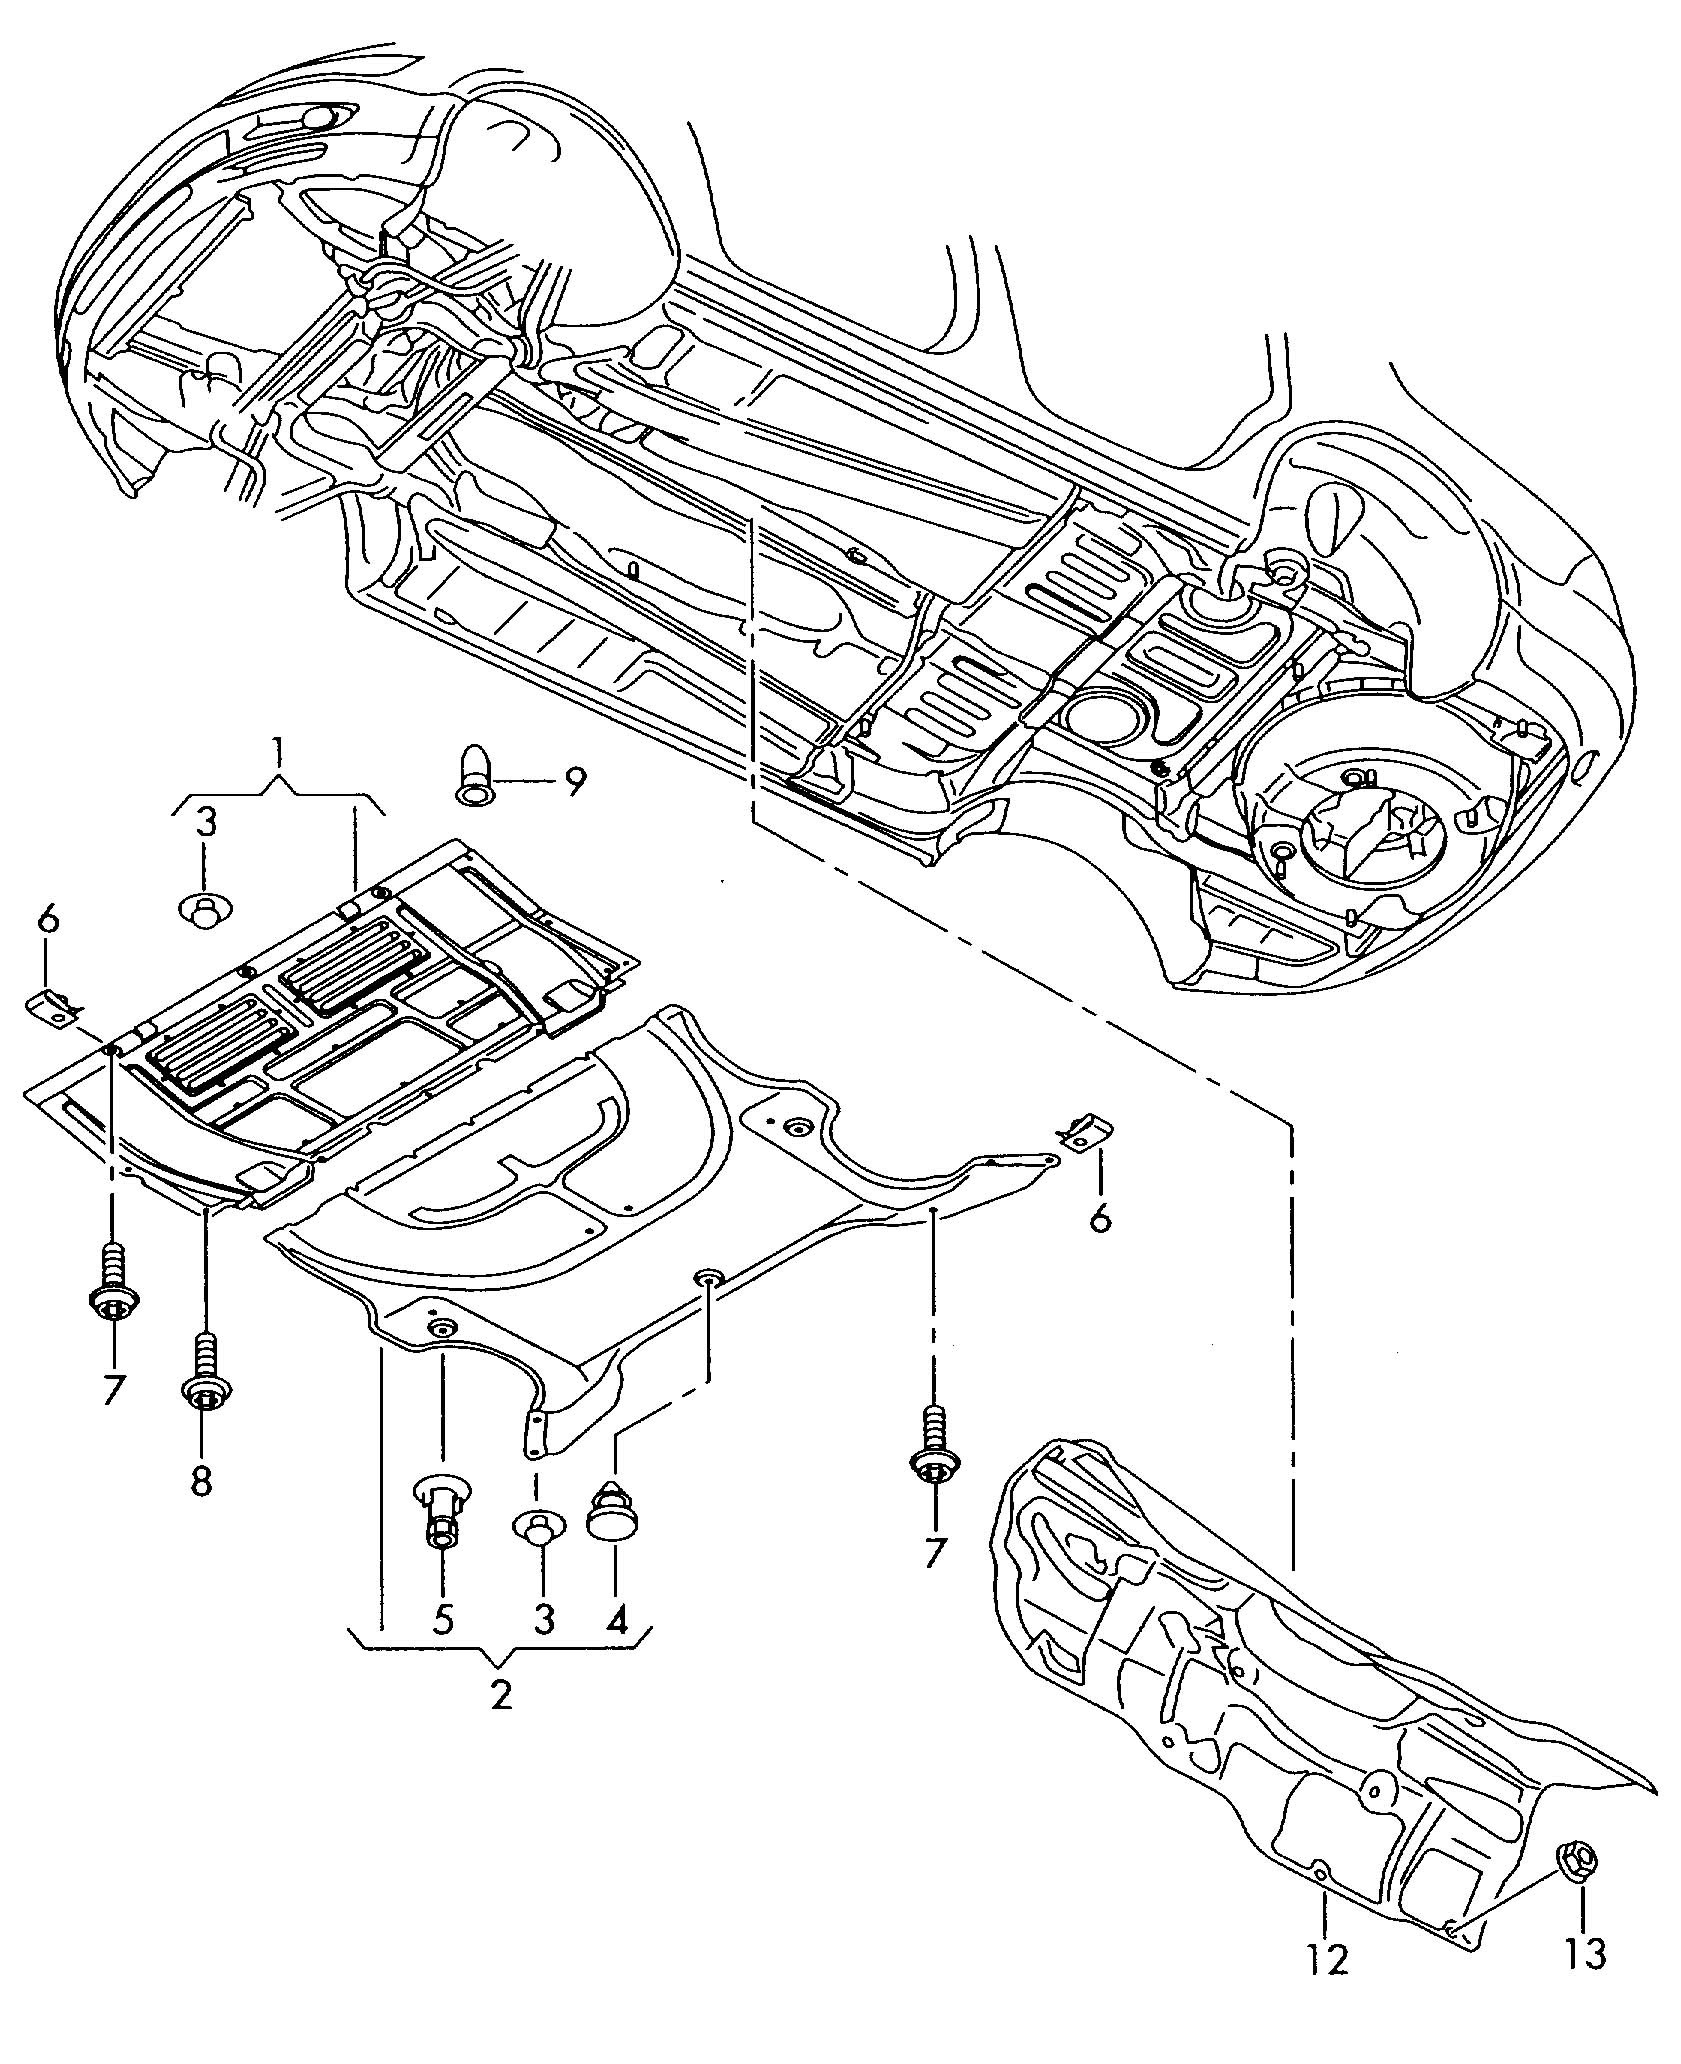 Diagram Of Car Underside Pin by Kim Wilson On Car